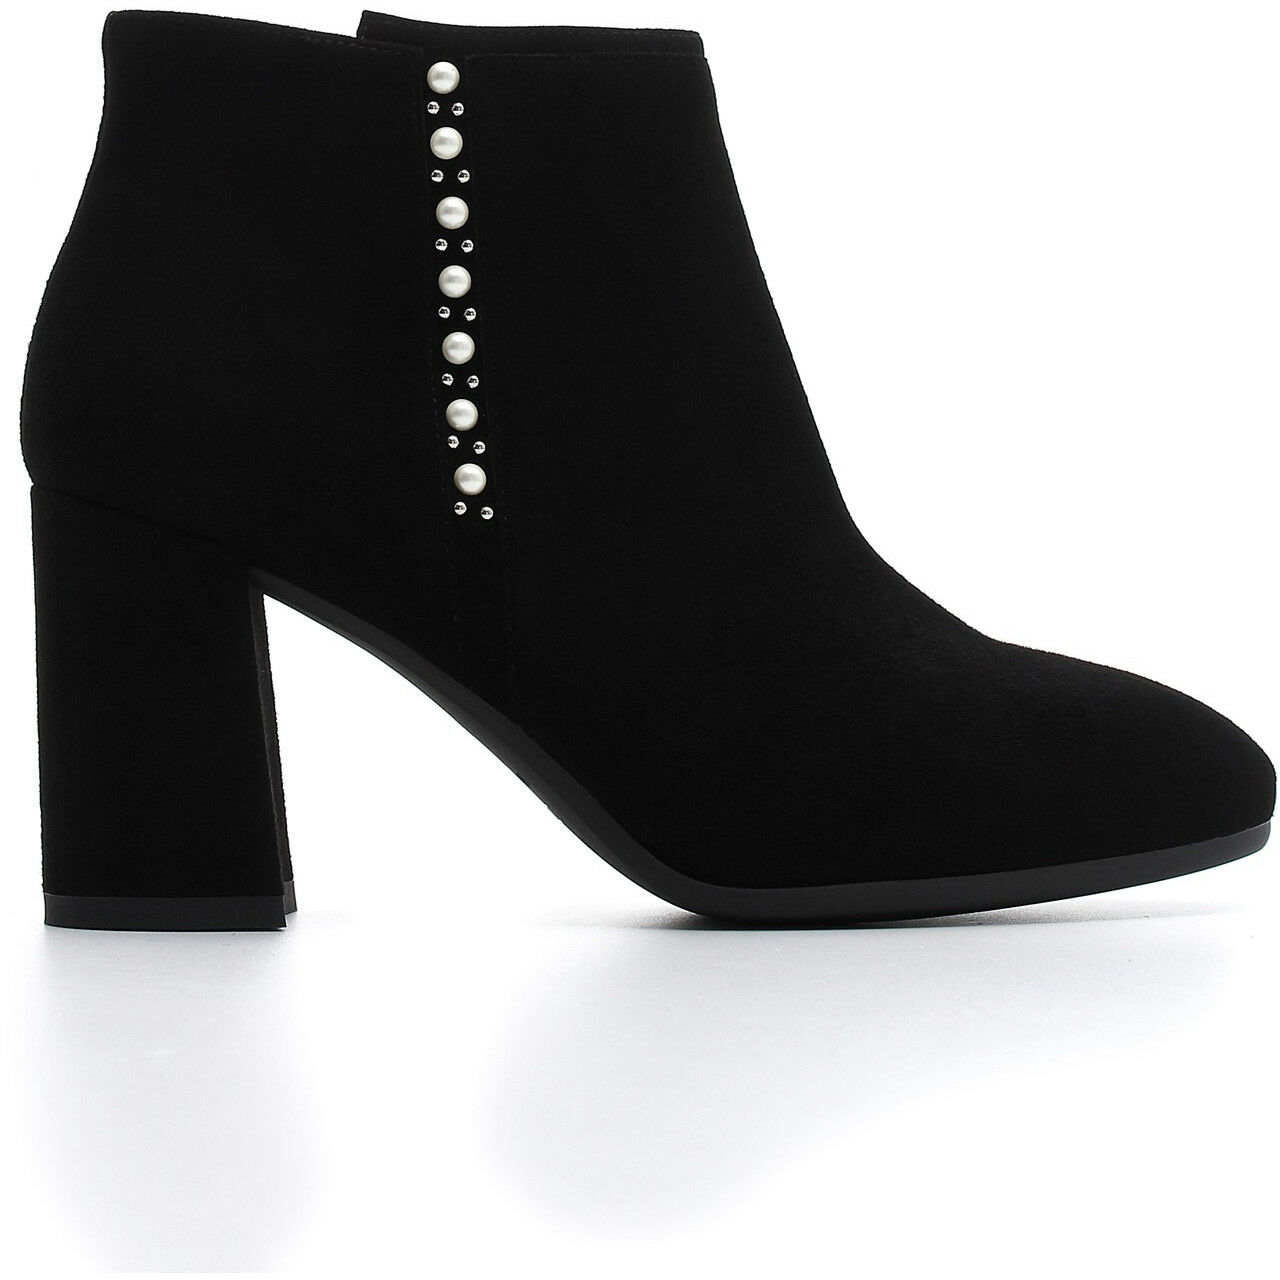 blackgiardini suede boot new collection a806925de made in italy